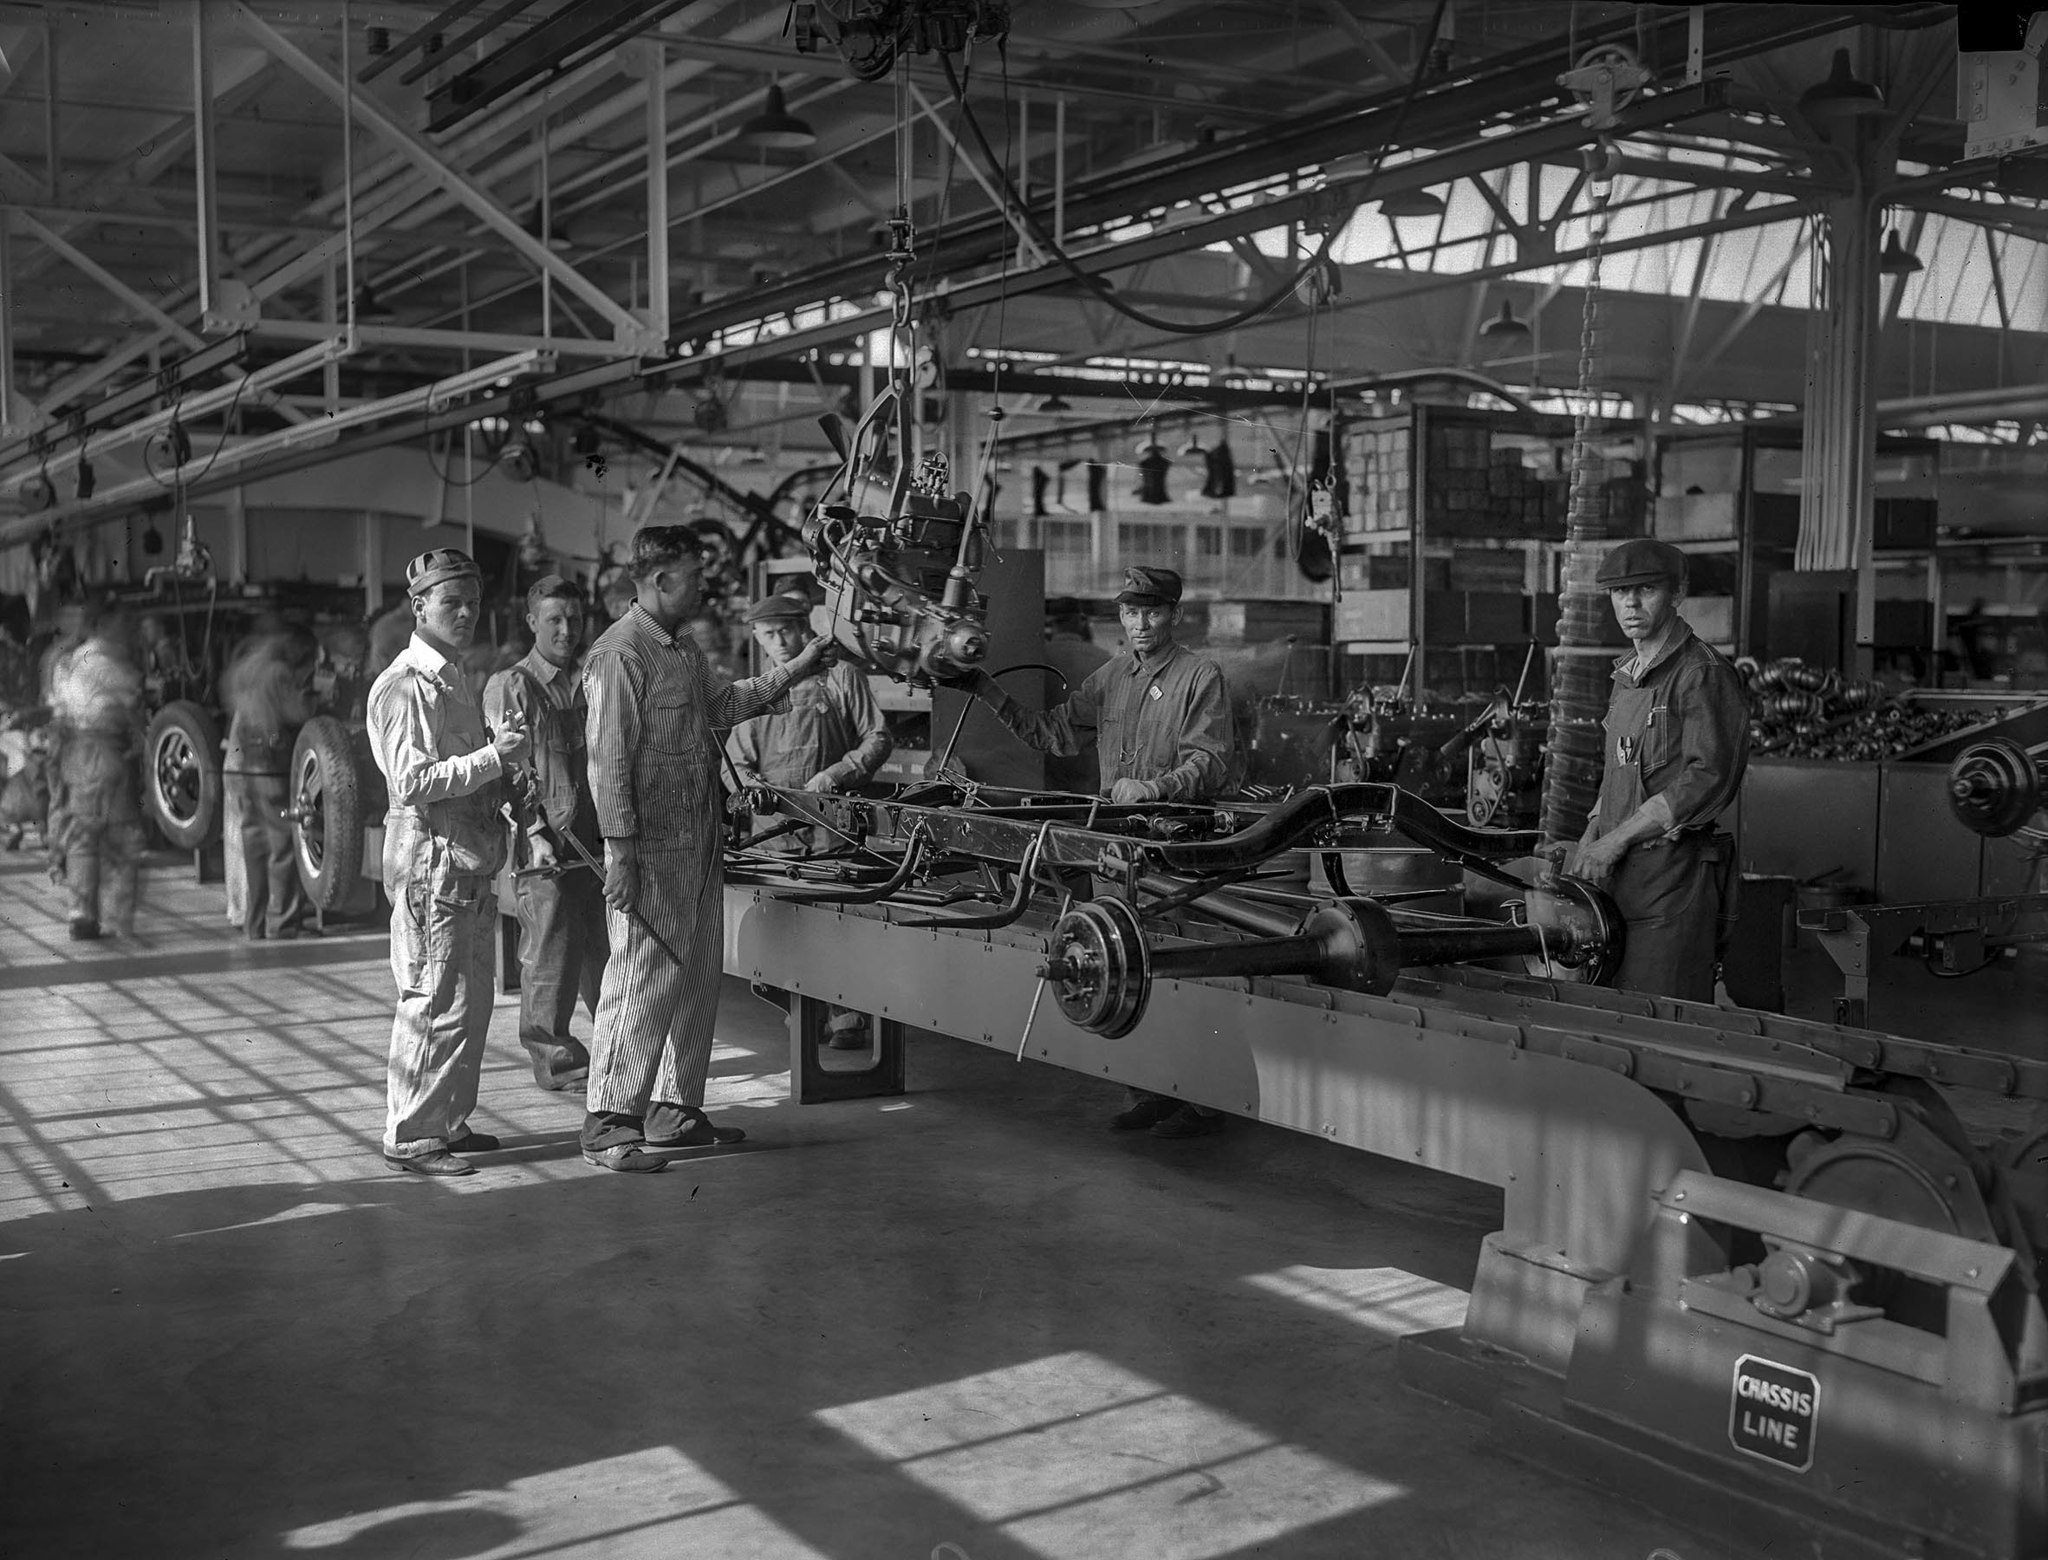 April 21, 1930: Workers on the assembly line at new Ford Motor plant in Long Beach A similar photo a